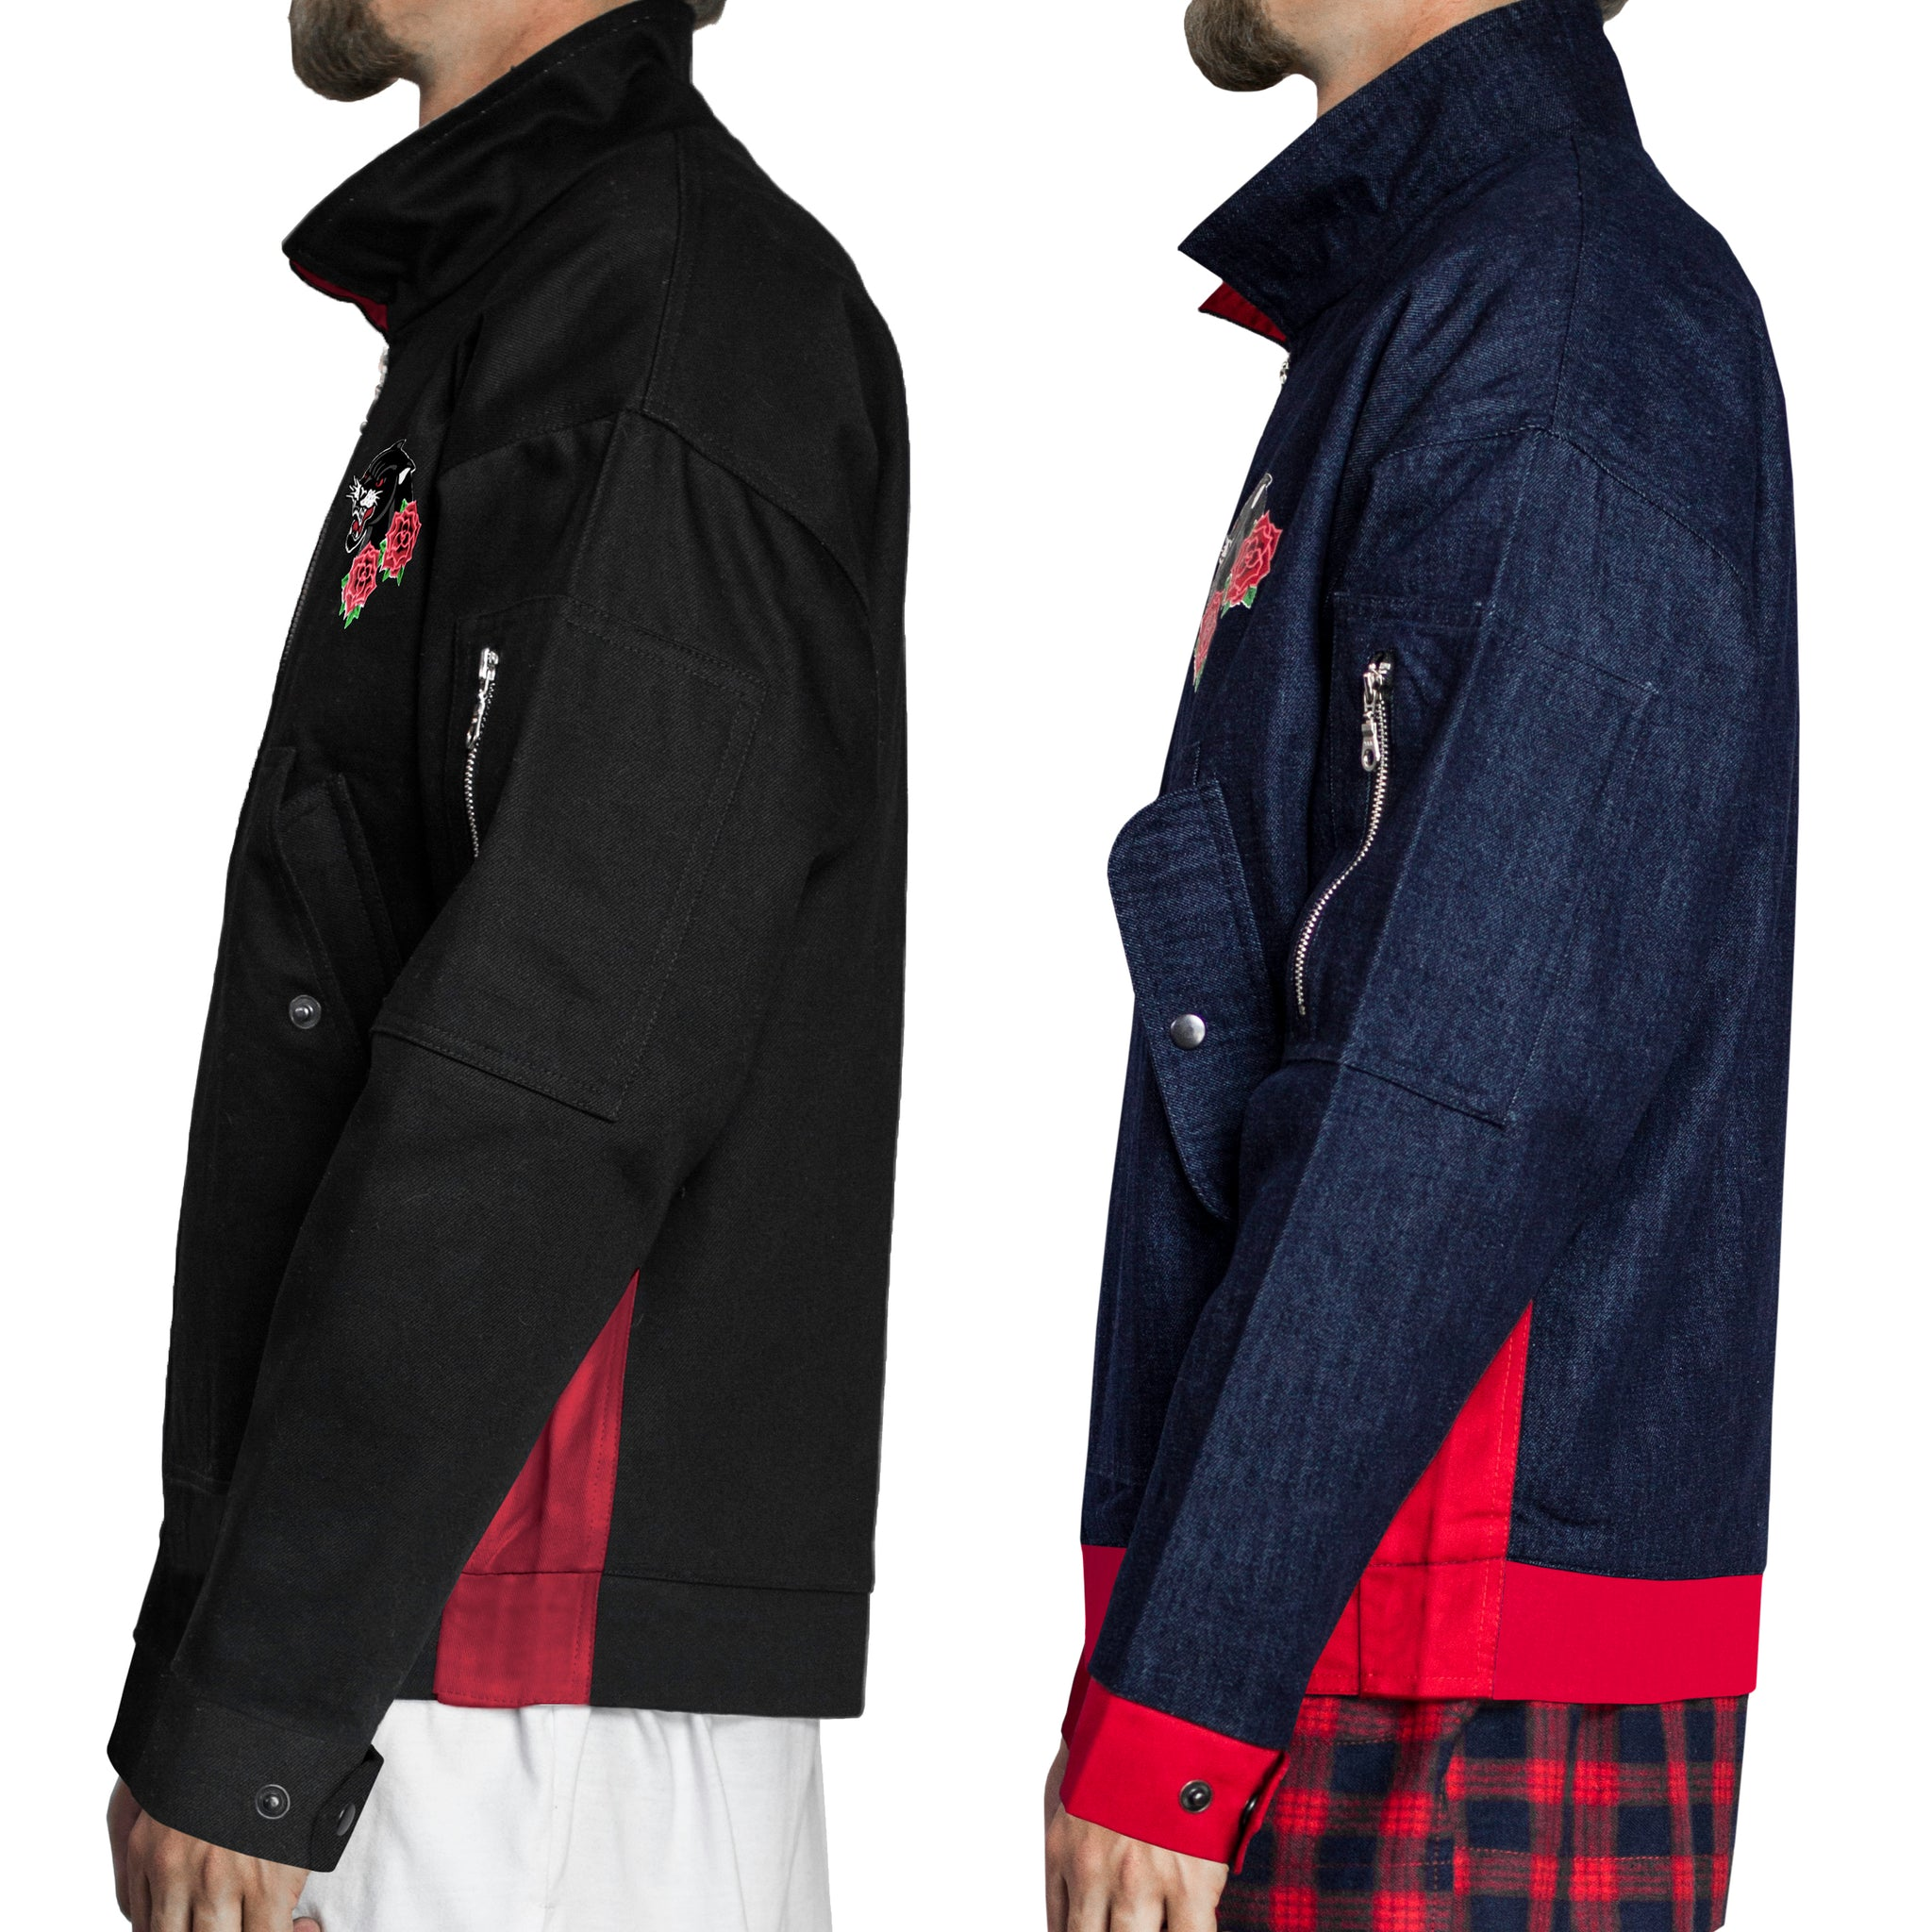 Panther Pilot Jackets 2.0 : 2 Colorways